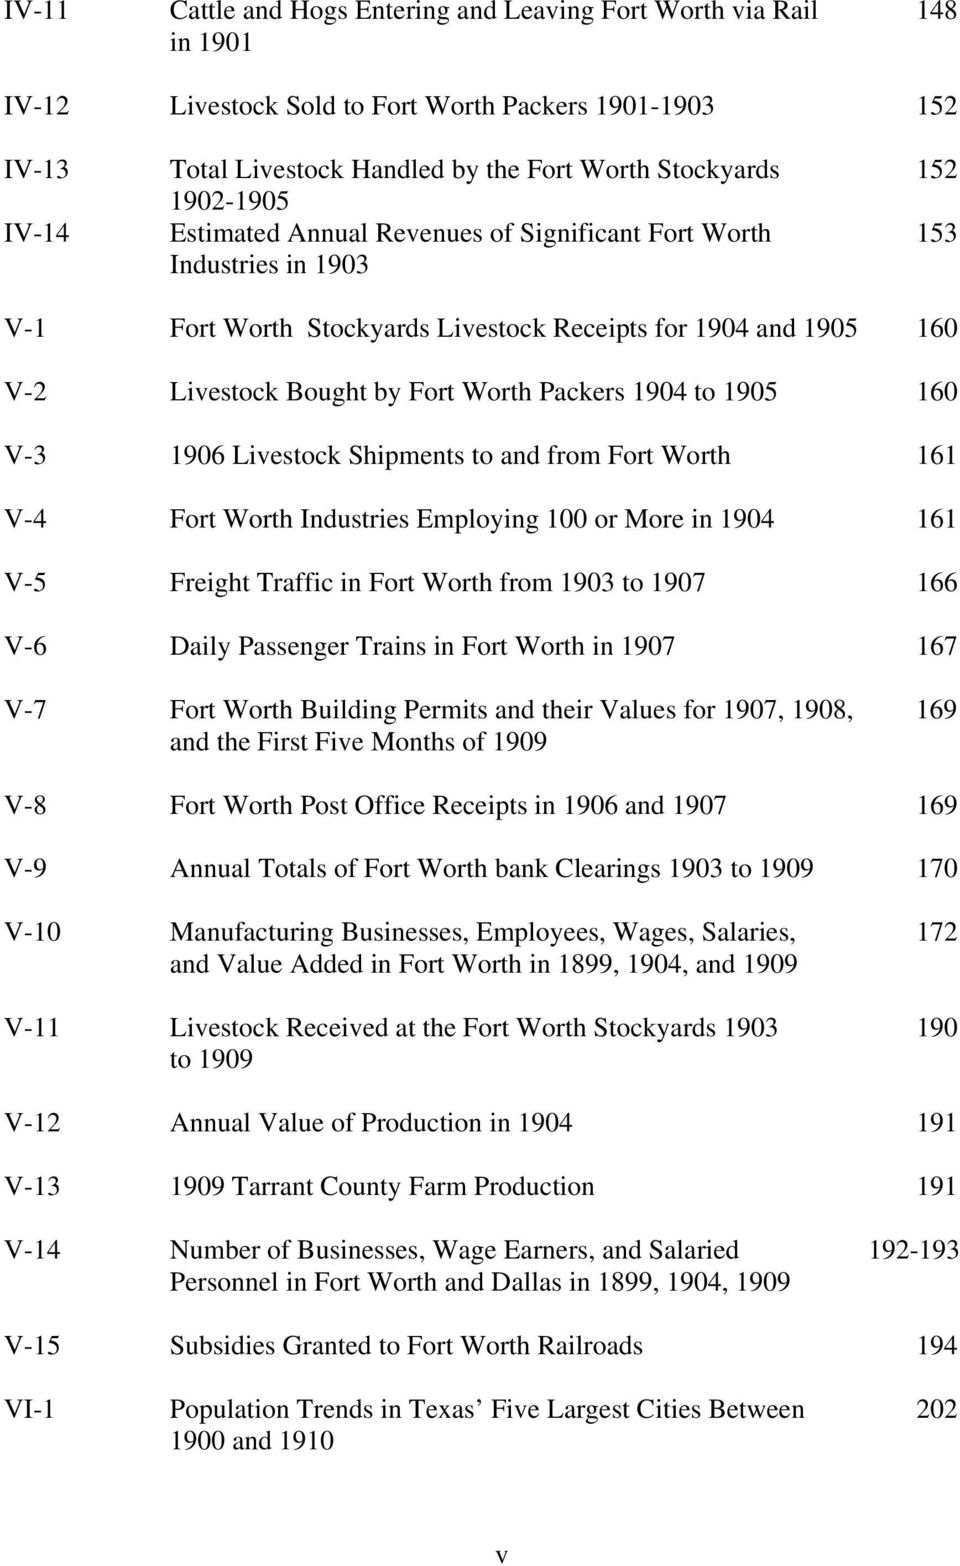 Packers 1904 to 1905 160 V-3 1906 Livestock Shipments to and from Fort Worth 161 V-4 Fort Worth Industries Employing 100 or More in 1904 161 V-5 Freight Traffic in Fort Worth from 1903 to 1907 166